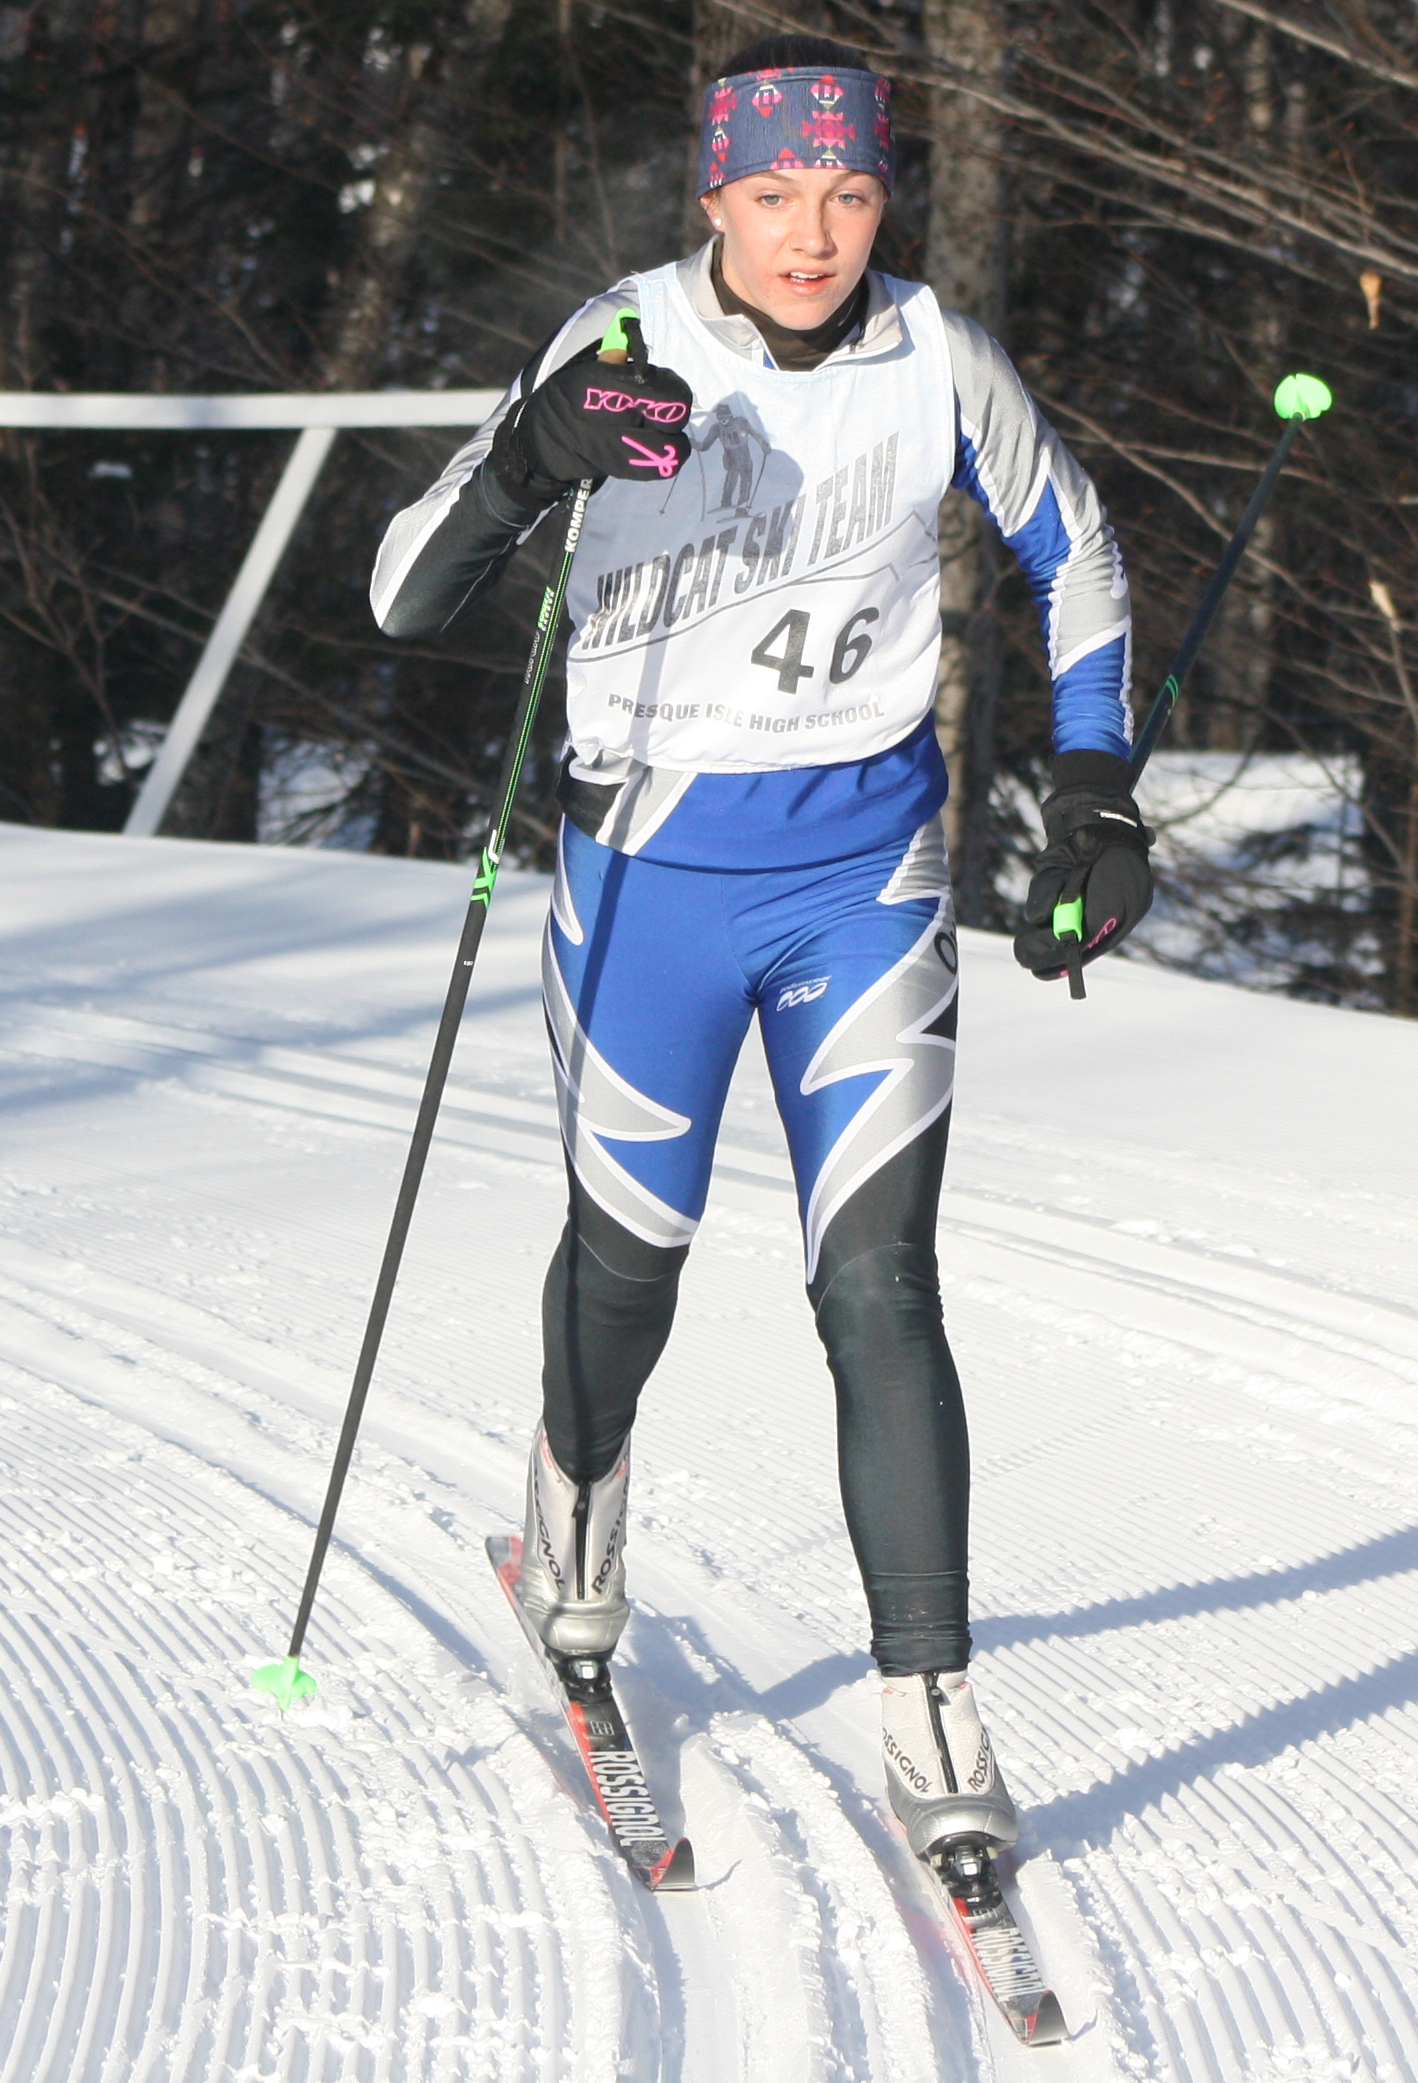 Madawaska's Isabelle Jandreau heads toward the finish of five-kilometer course during the Feb. 7 Aroostook League classical ski championships at the Nordic Heritage Center in Presque Isle. Jandreau won the title with a time of 18 minutes and 52.7 seconds. (Staff photo | Kevin Sjoberg)